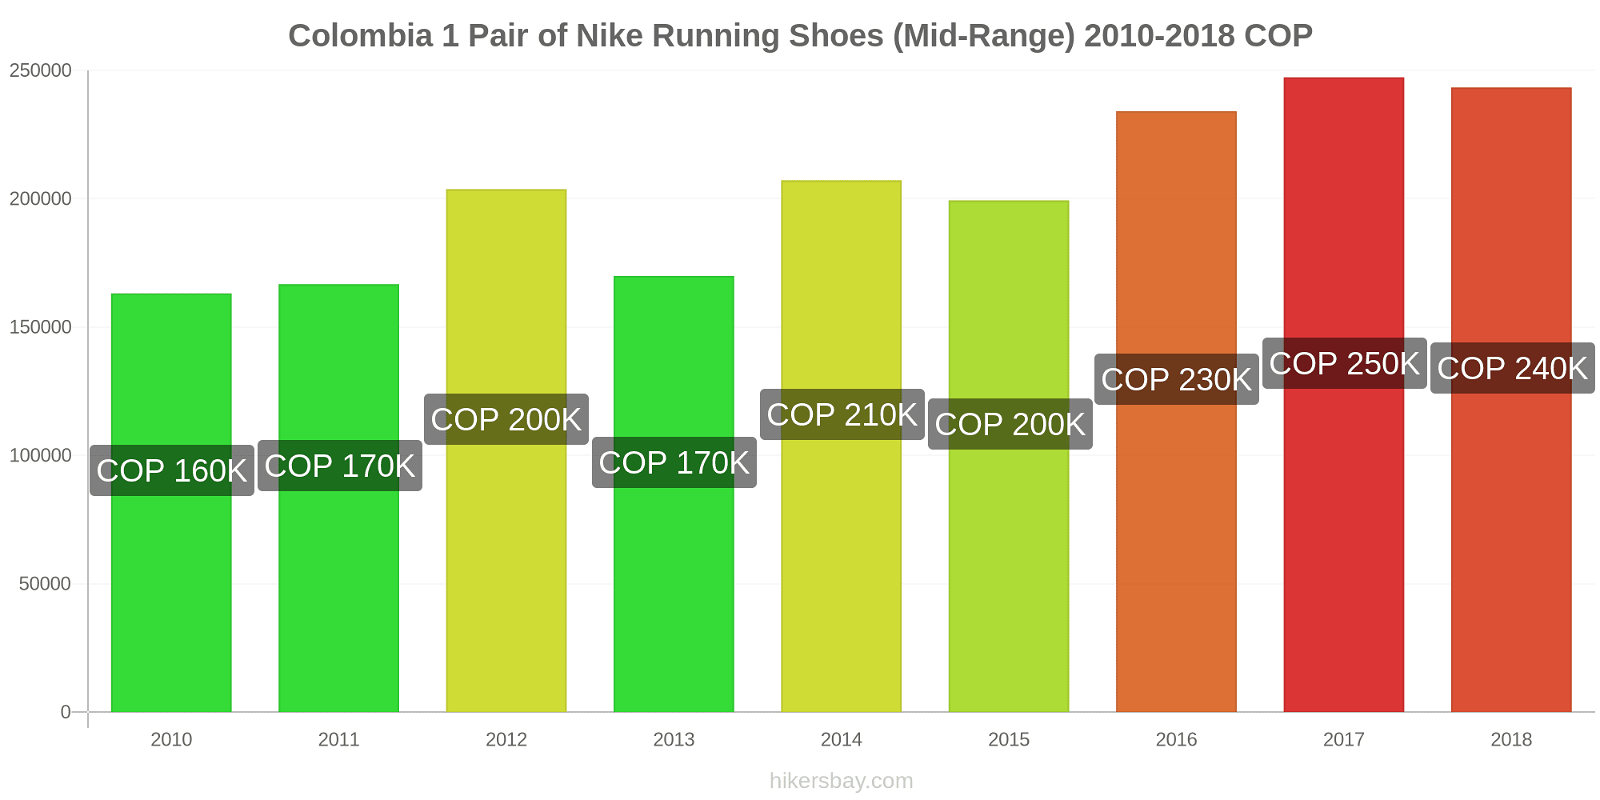 Colombia price changes 1 Pair of Nike Running Shoes (Mid-Range) hikersbay.com